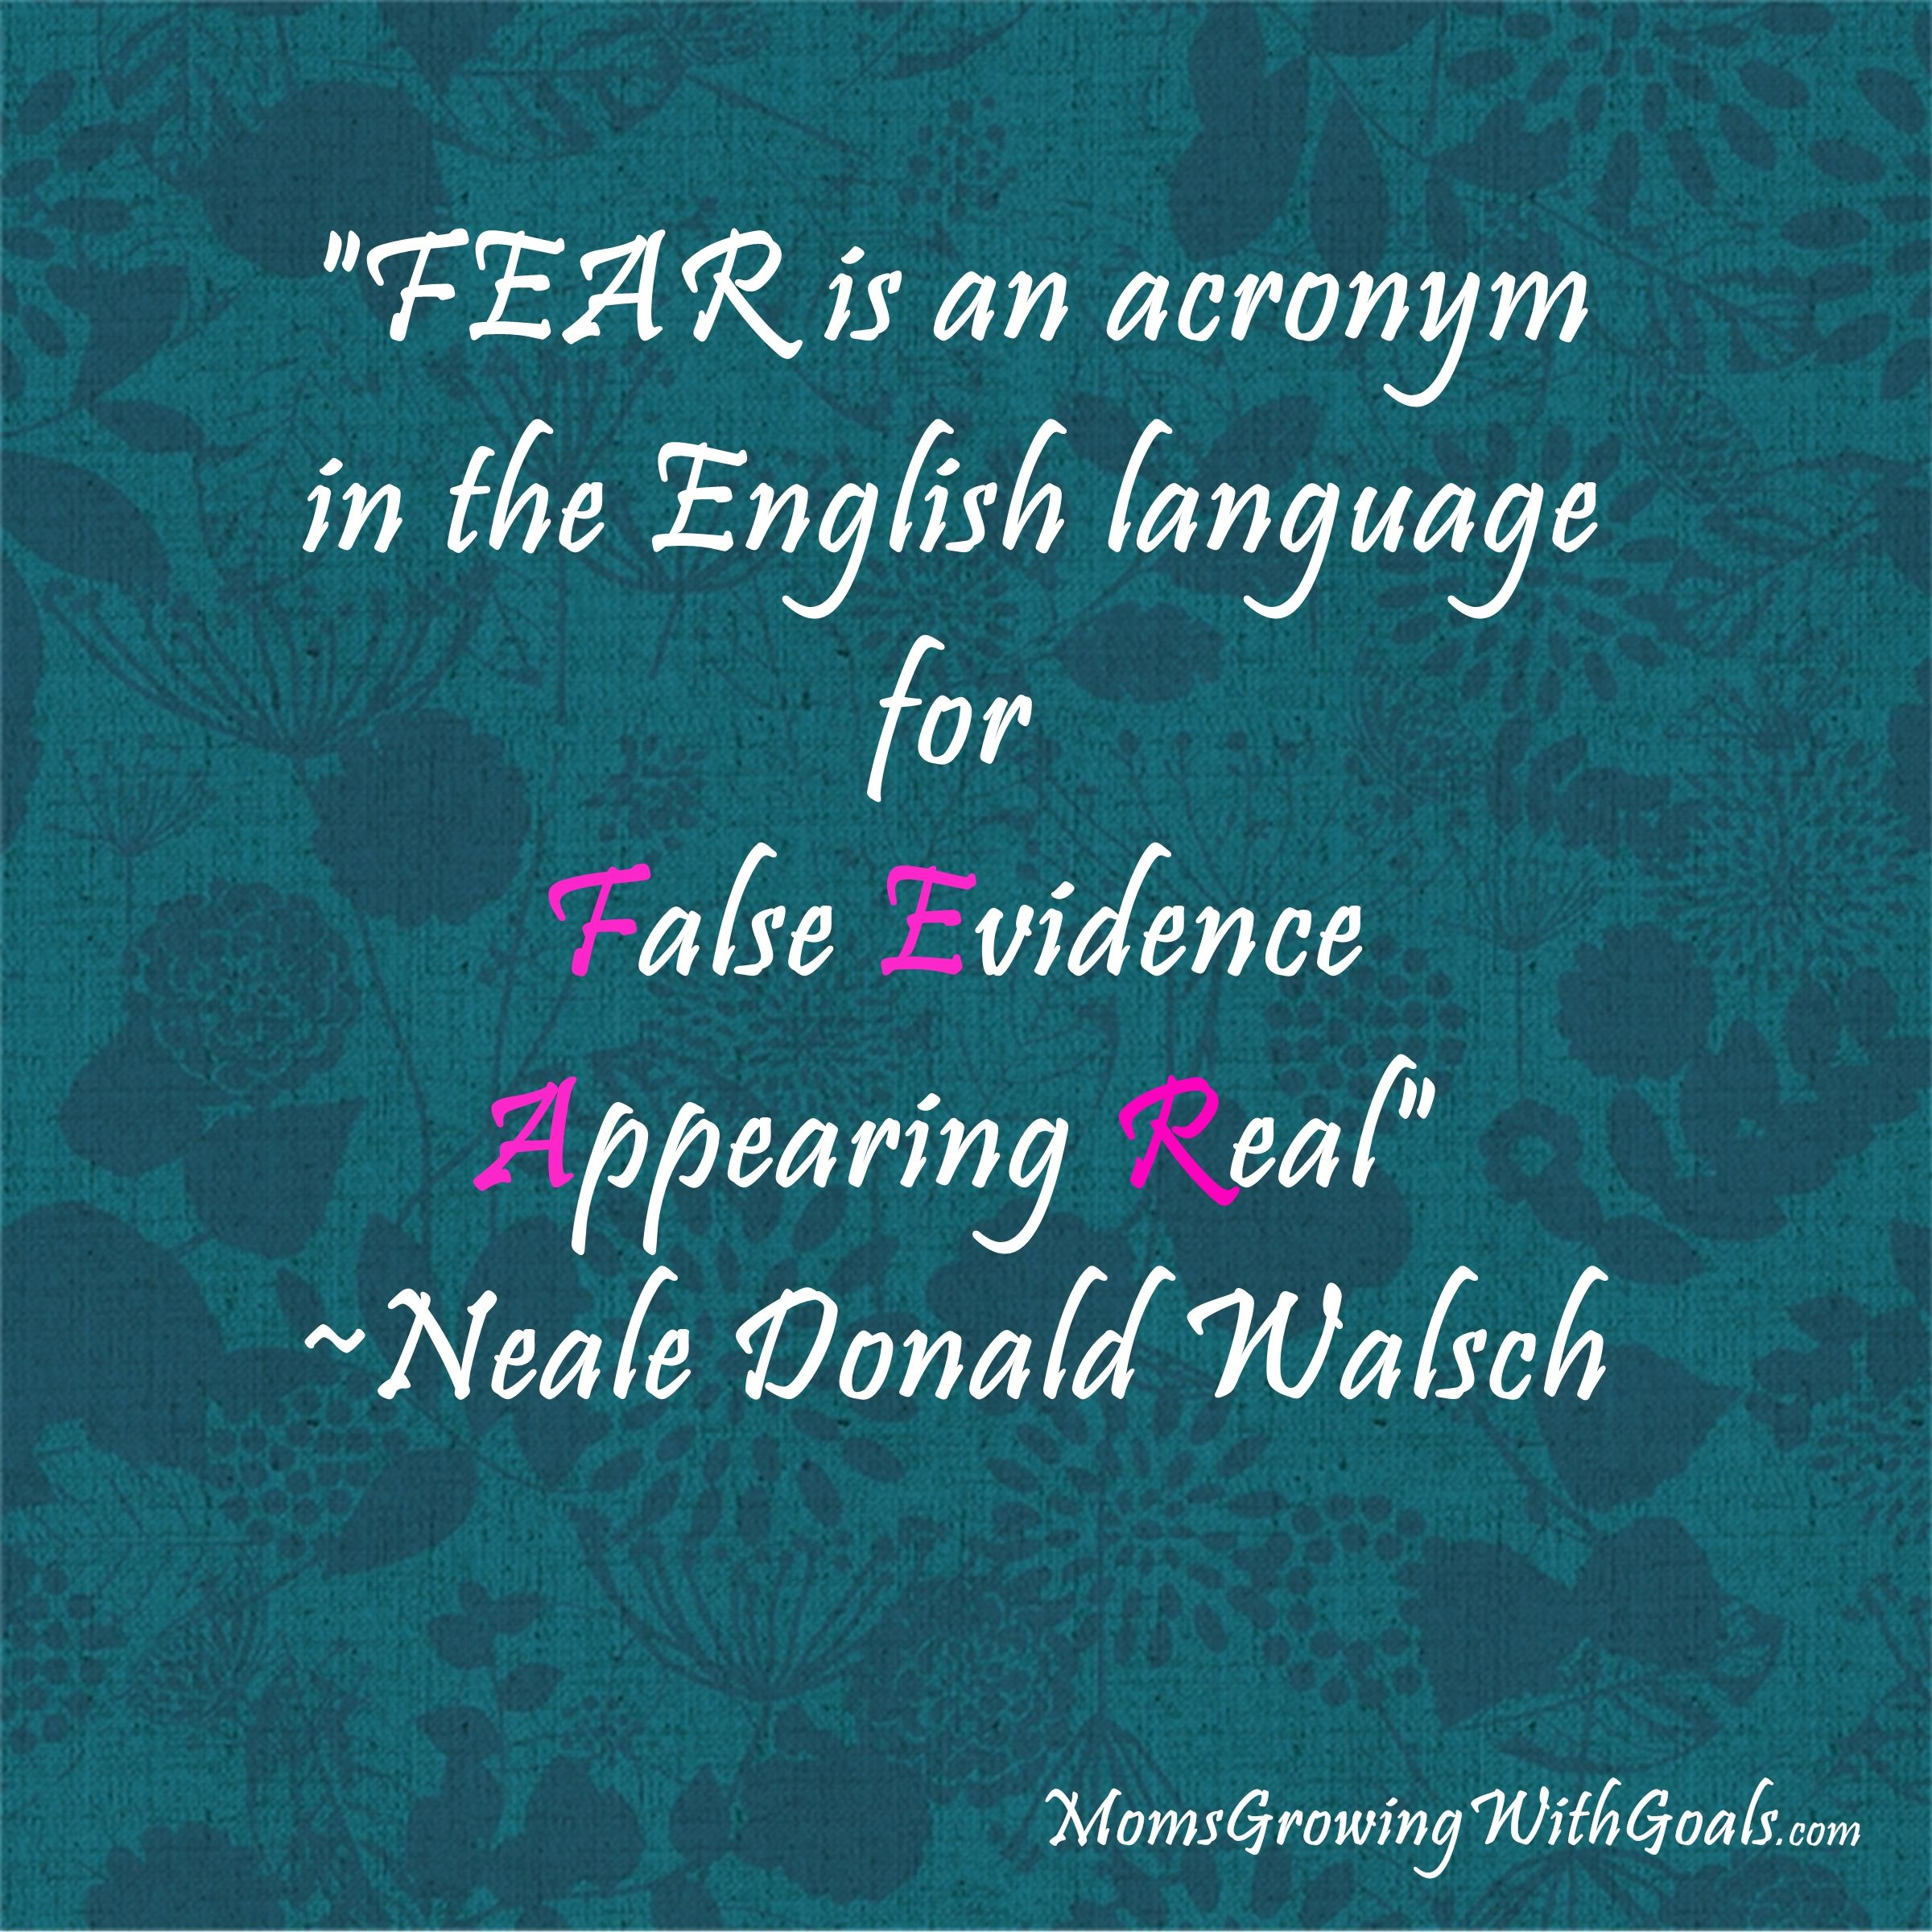 """Inspirational Quotes About Fear: """"Fear Is An Acronym In The English Language For False"""